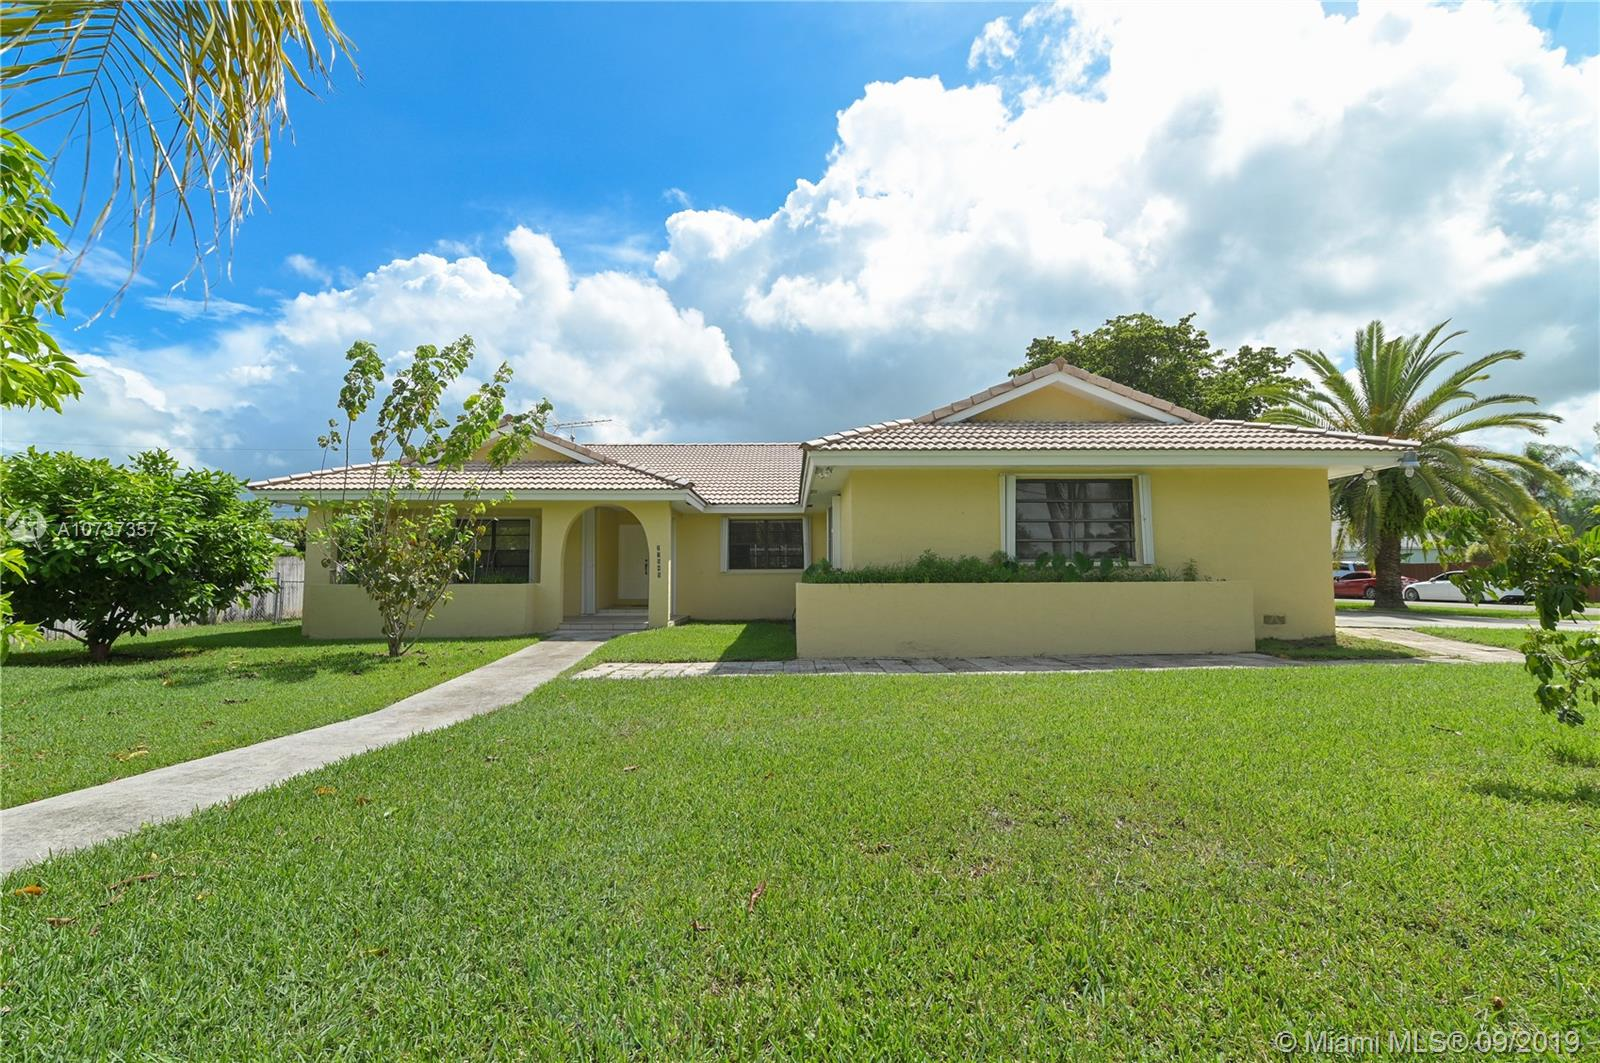 27545 SW 167th Ave 33031 - One of Homestead Homes for Sale